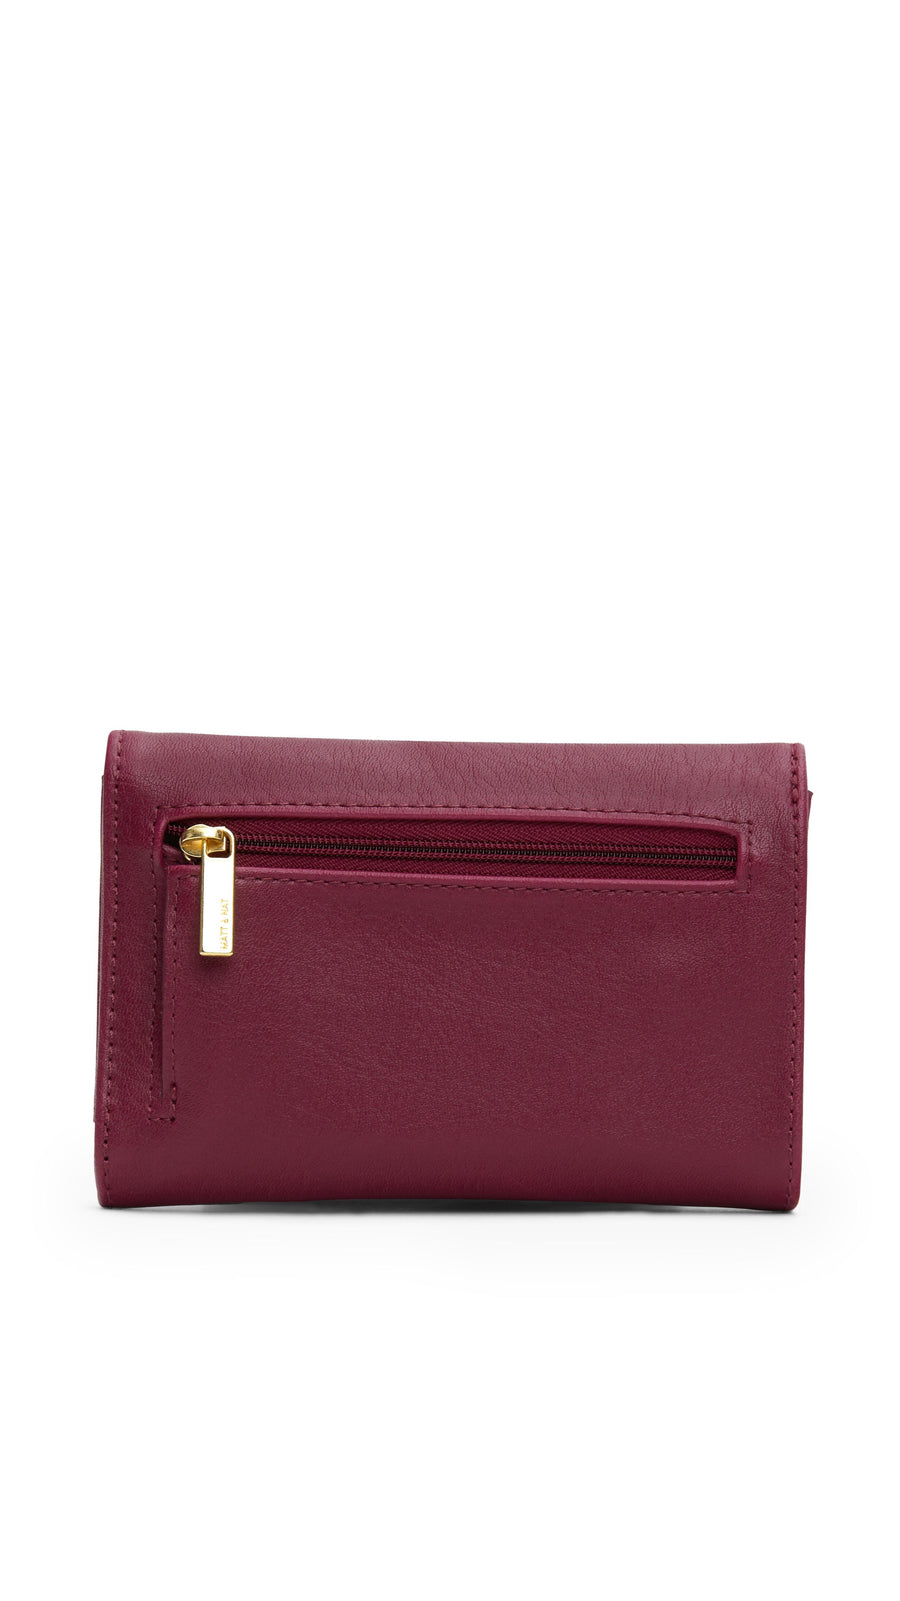 Matt & Nat Vera Small Wallet in Garnet with Gold Hardware